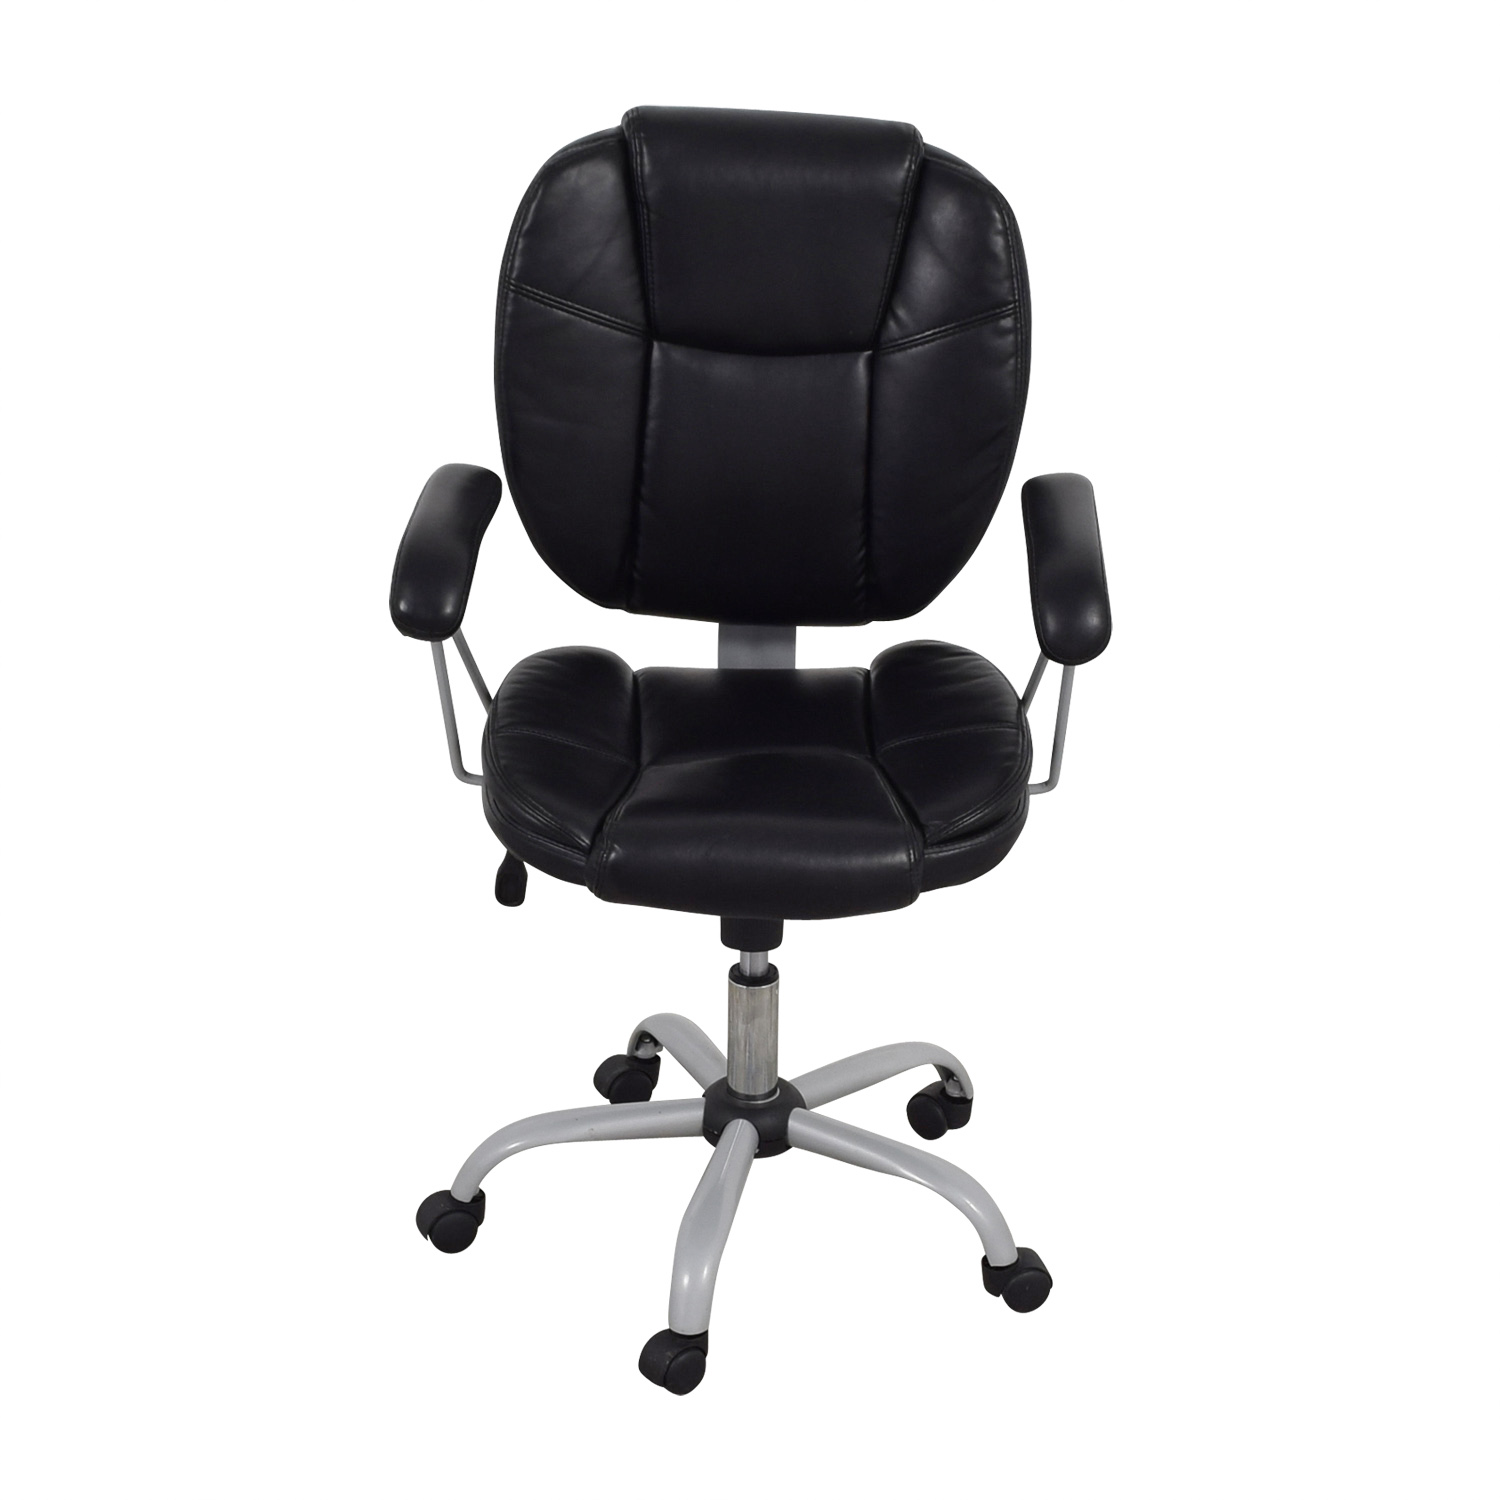 Black Leather Desk Chair black / gray